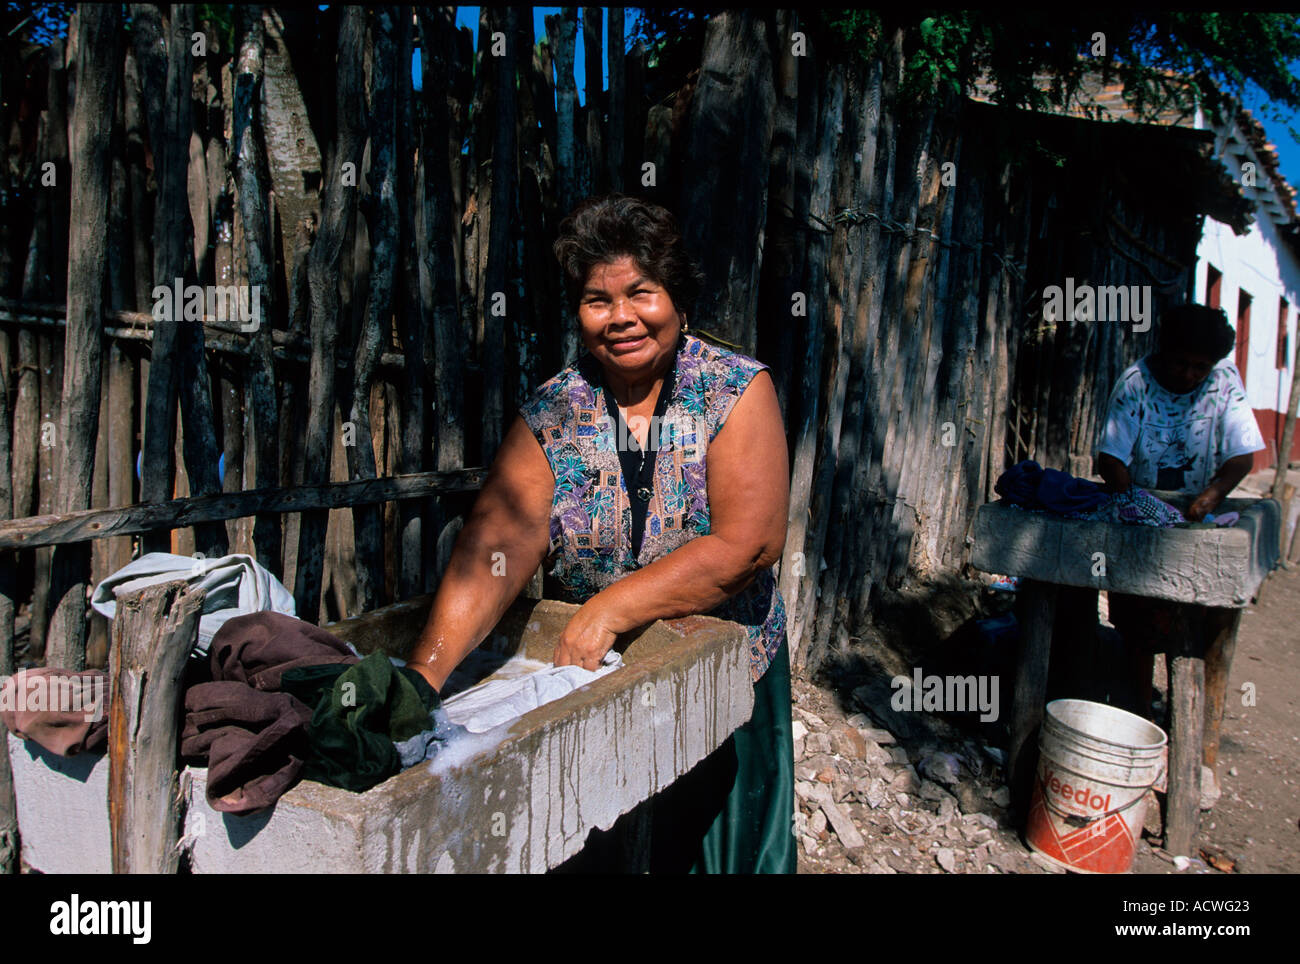 Mexico Nayarit Mexcaltitan laundry - Stock Image